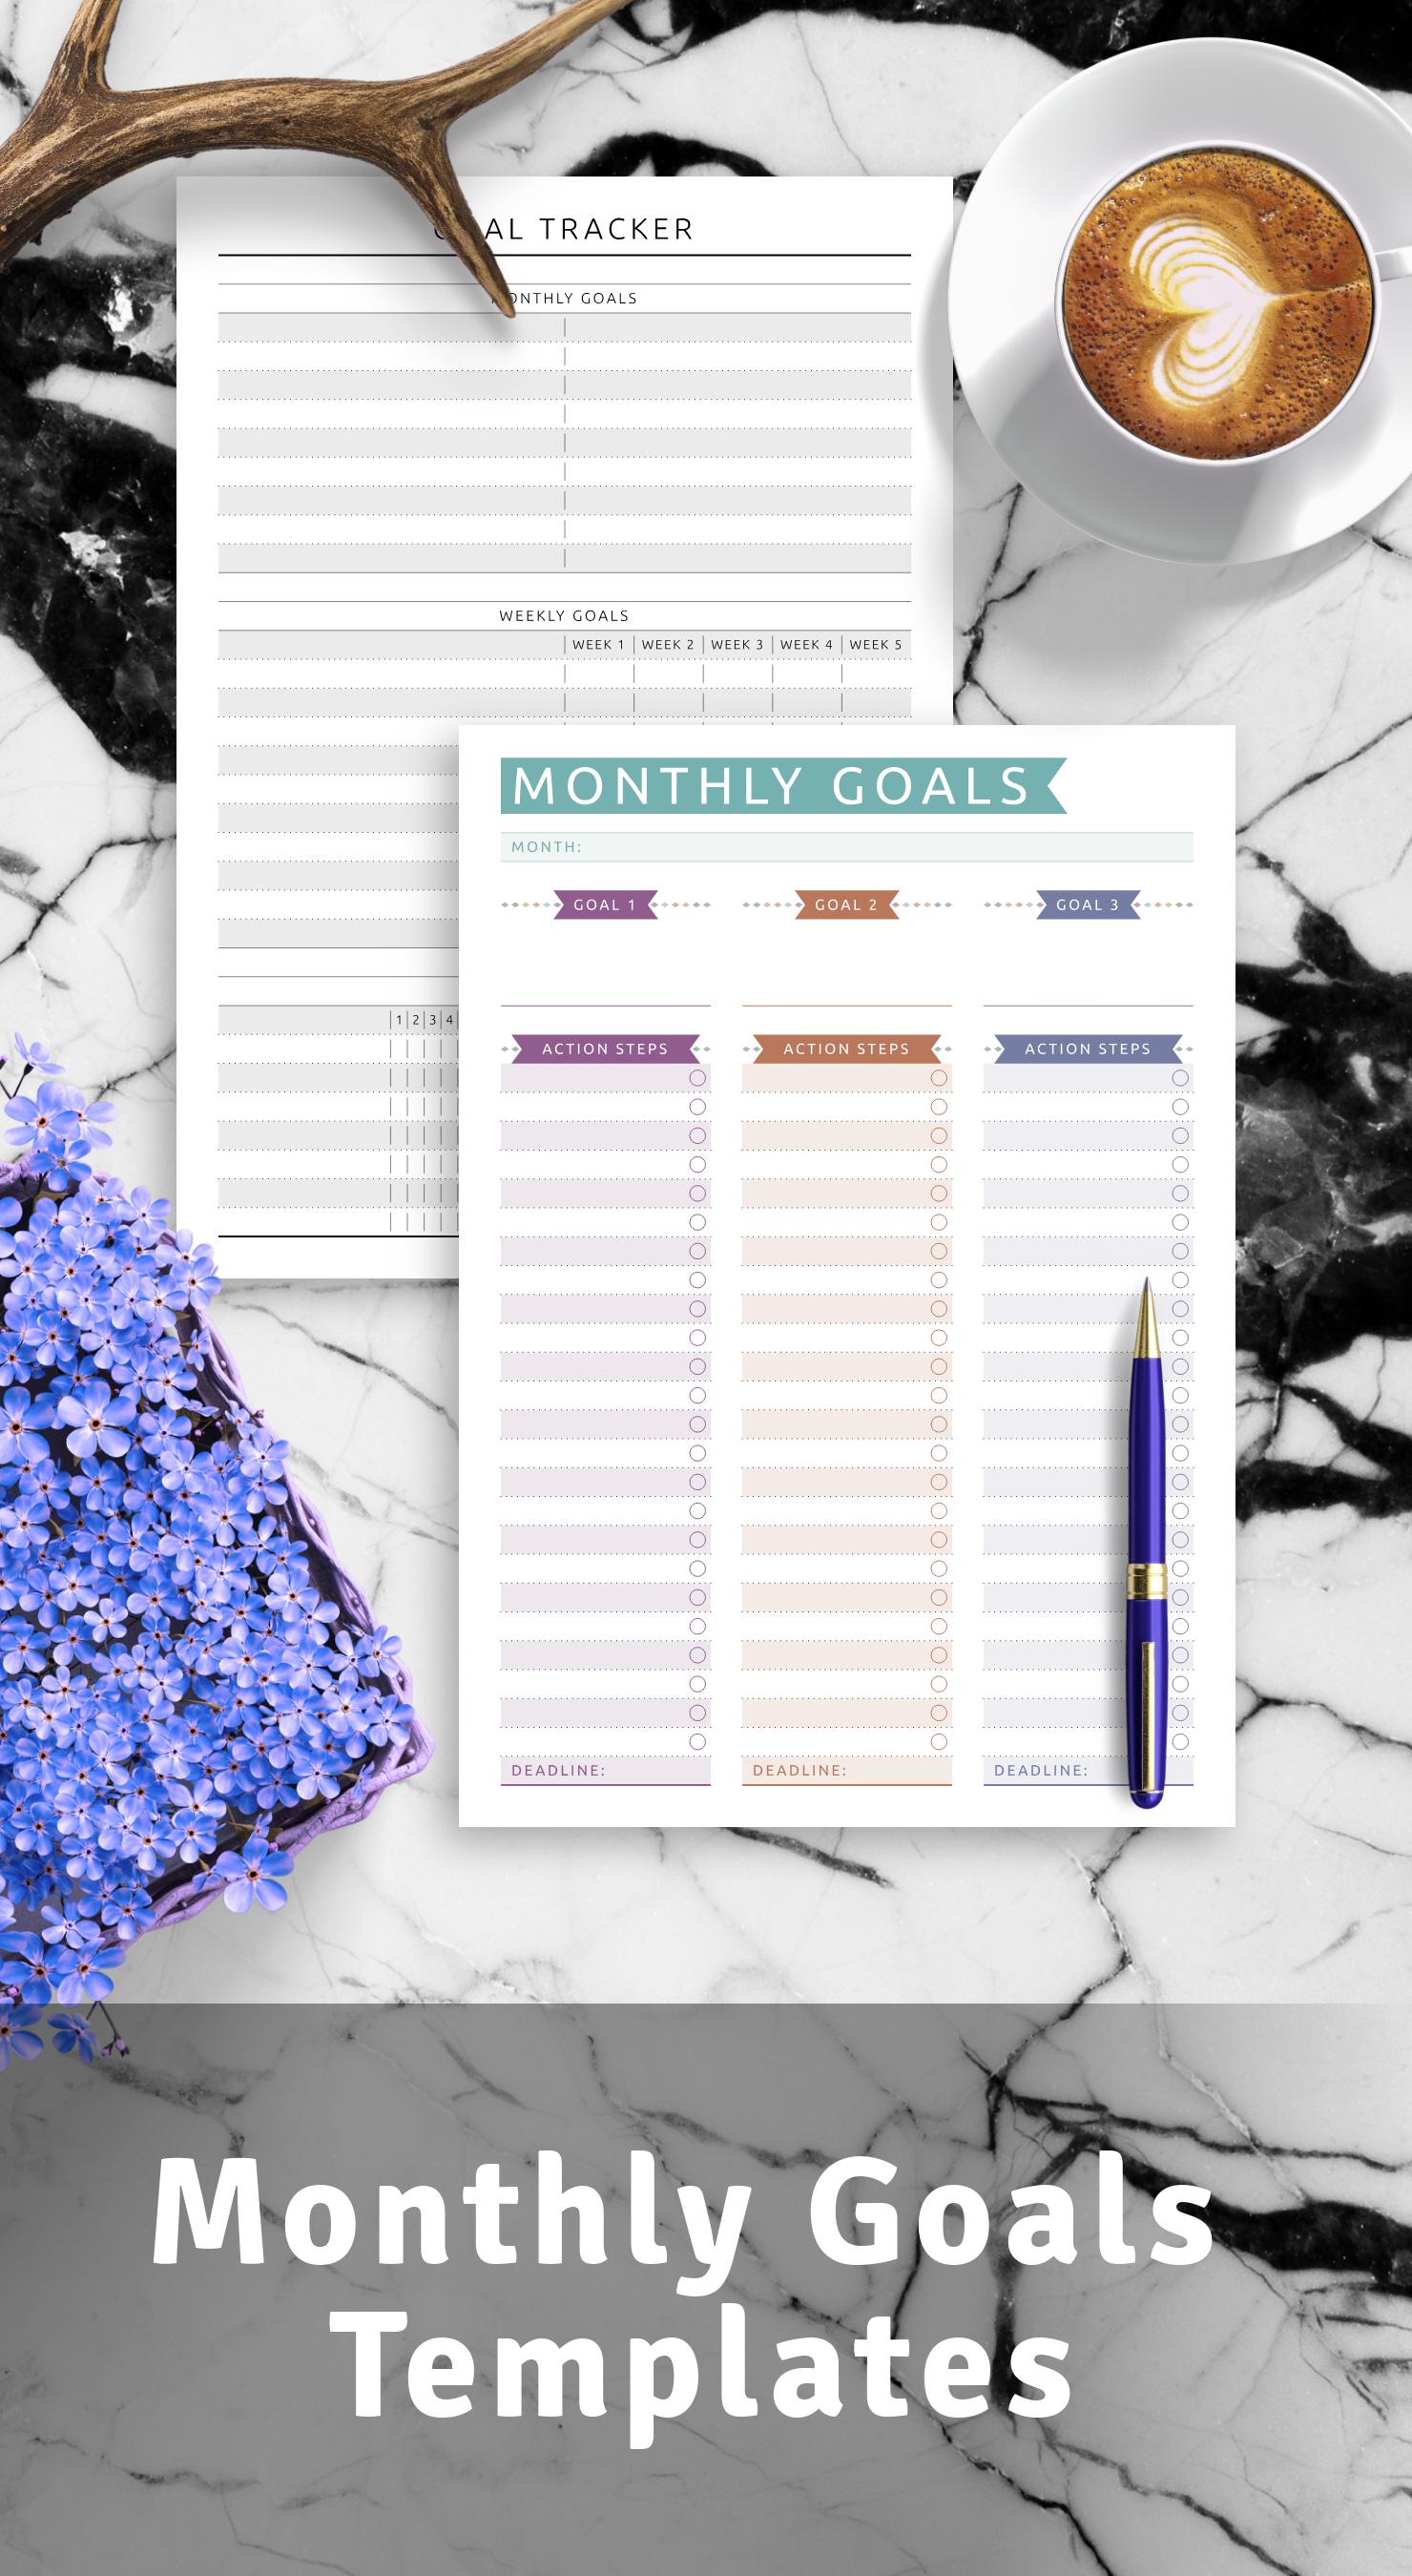 Best Monthly Goals Templates